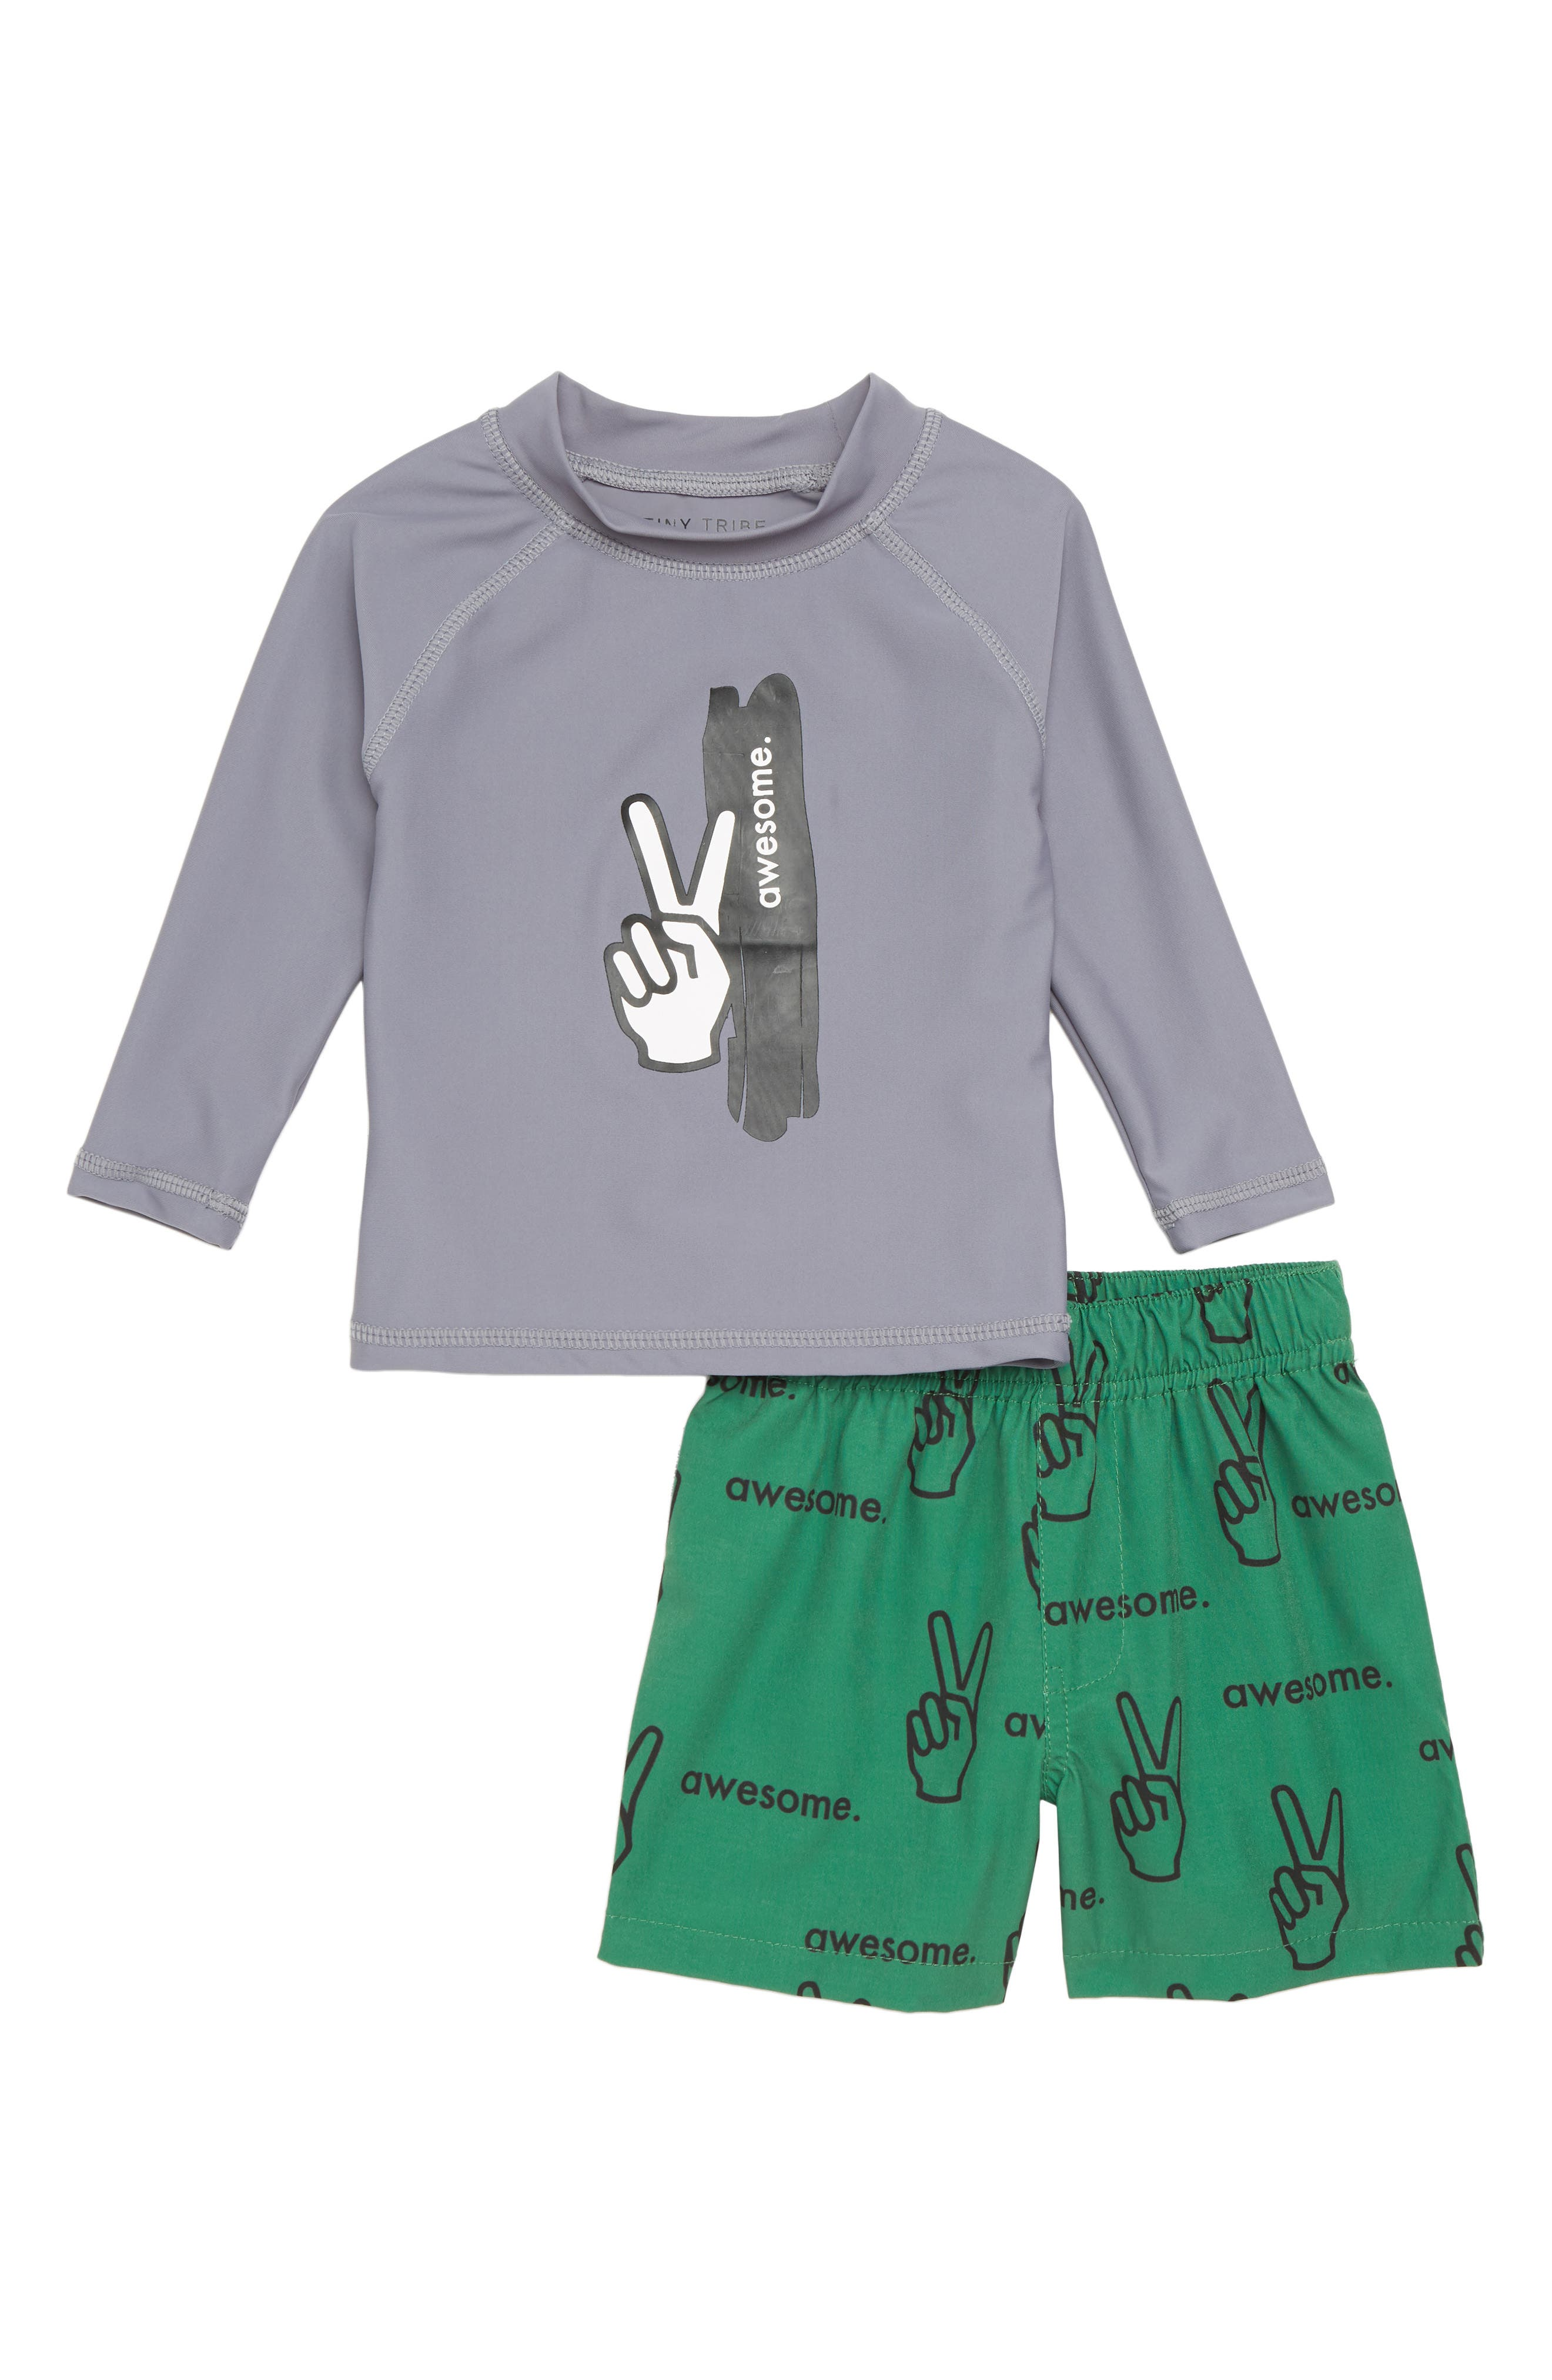 Boys are Awesome Two-Piece Rashguard Swimsuit,                             Main thumbnail 1, color,                             Grey/ Green